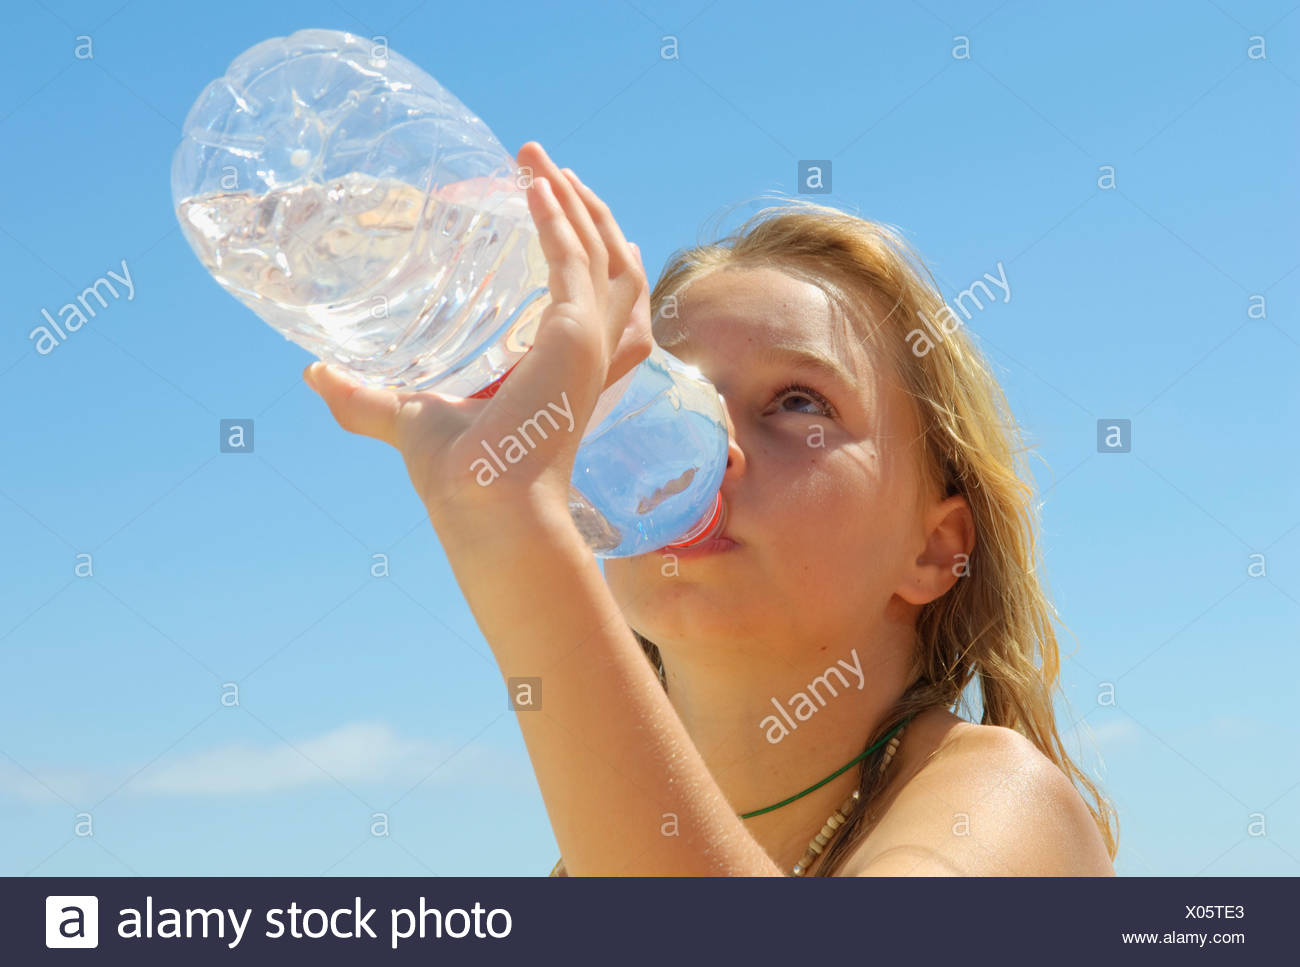 Drinking Water - Stock Image